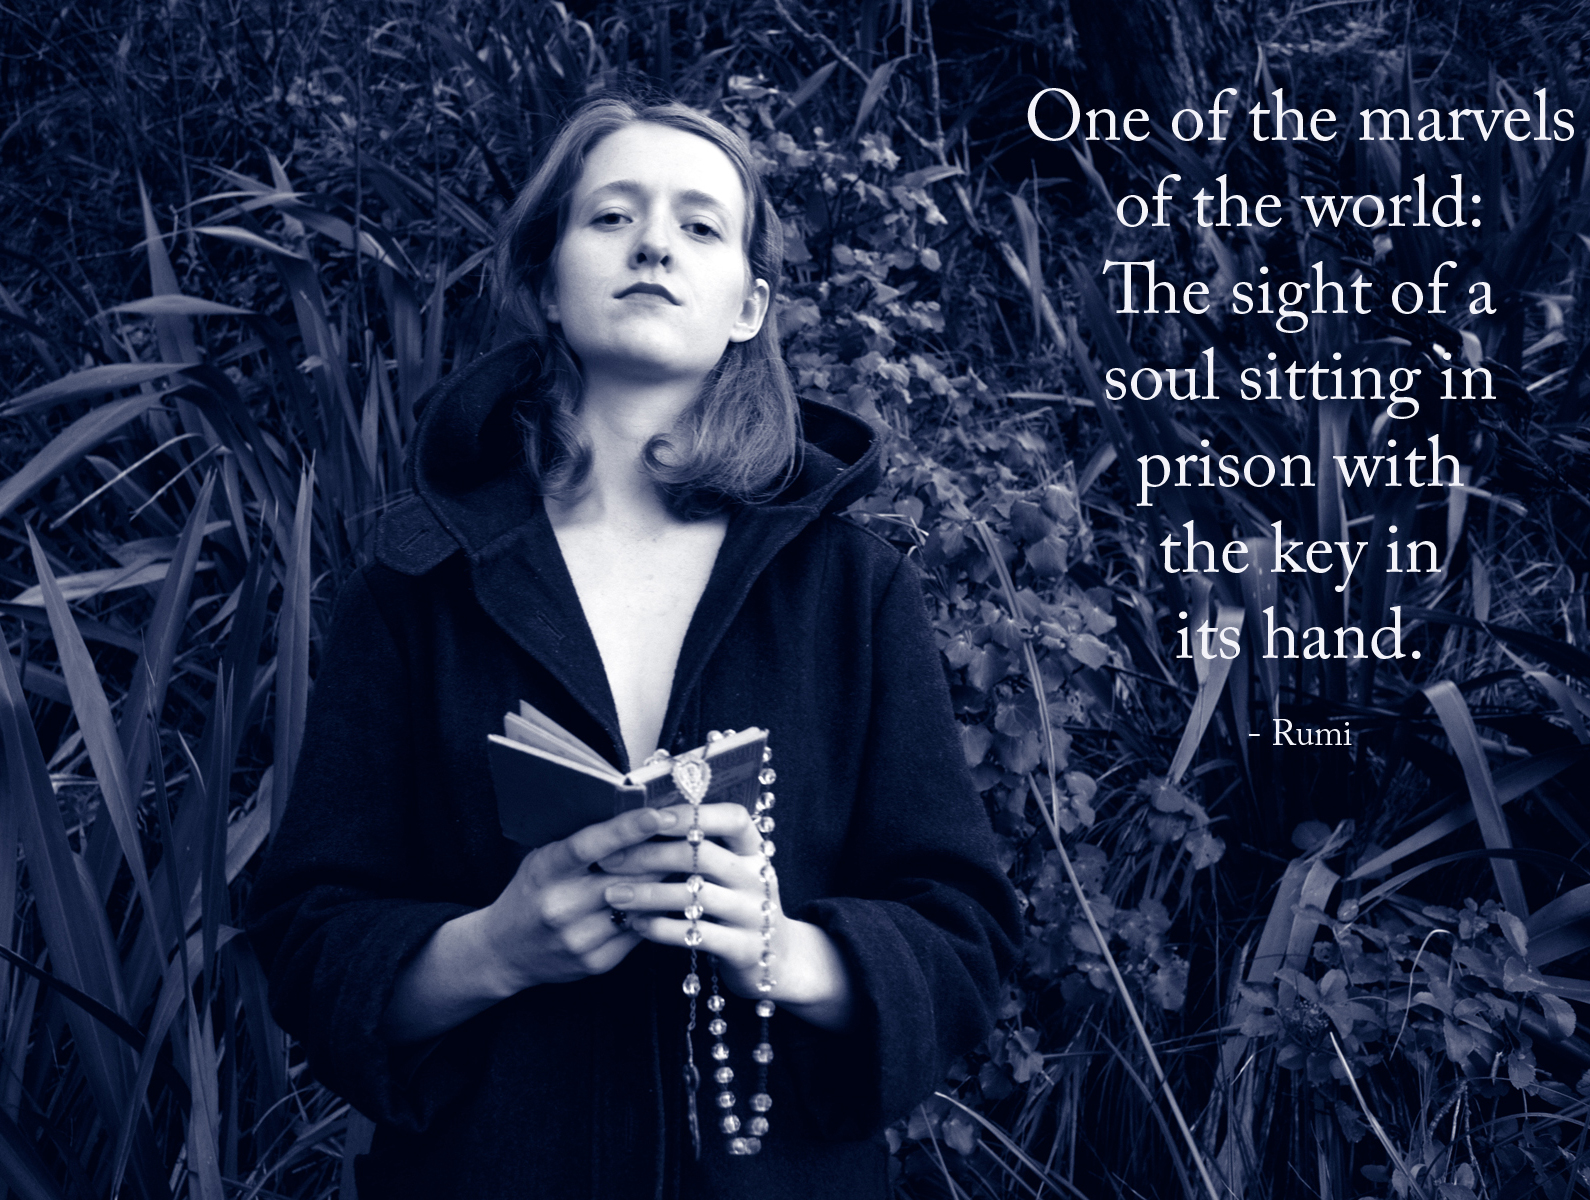 One of the marvels of the world – Rumi